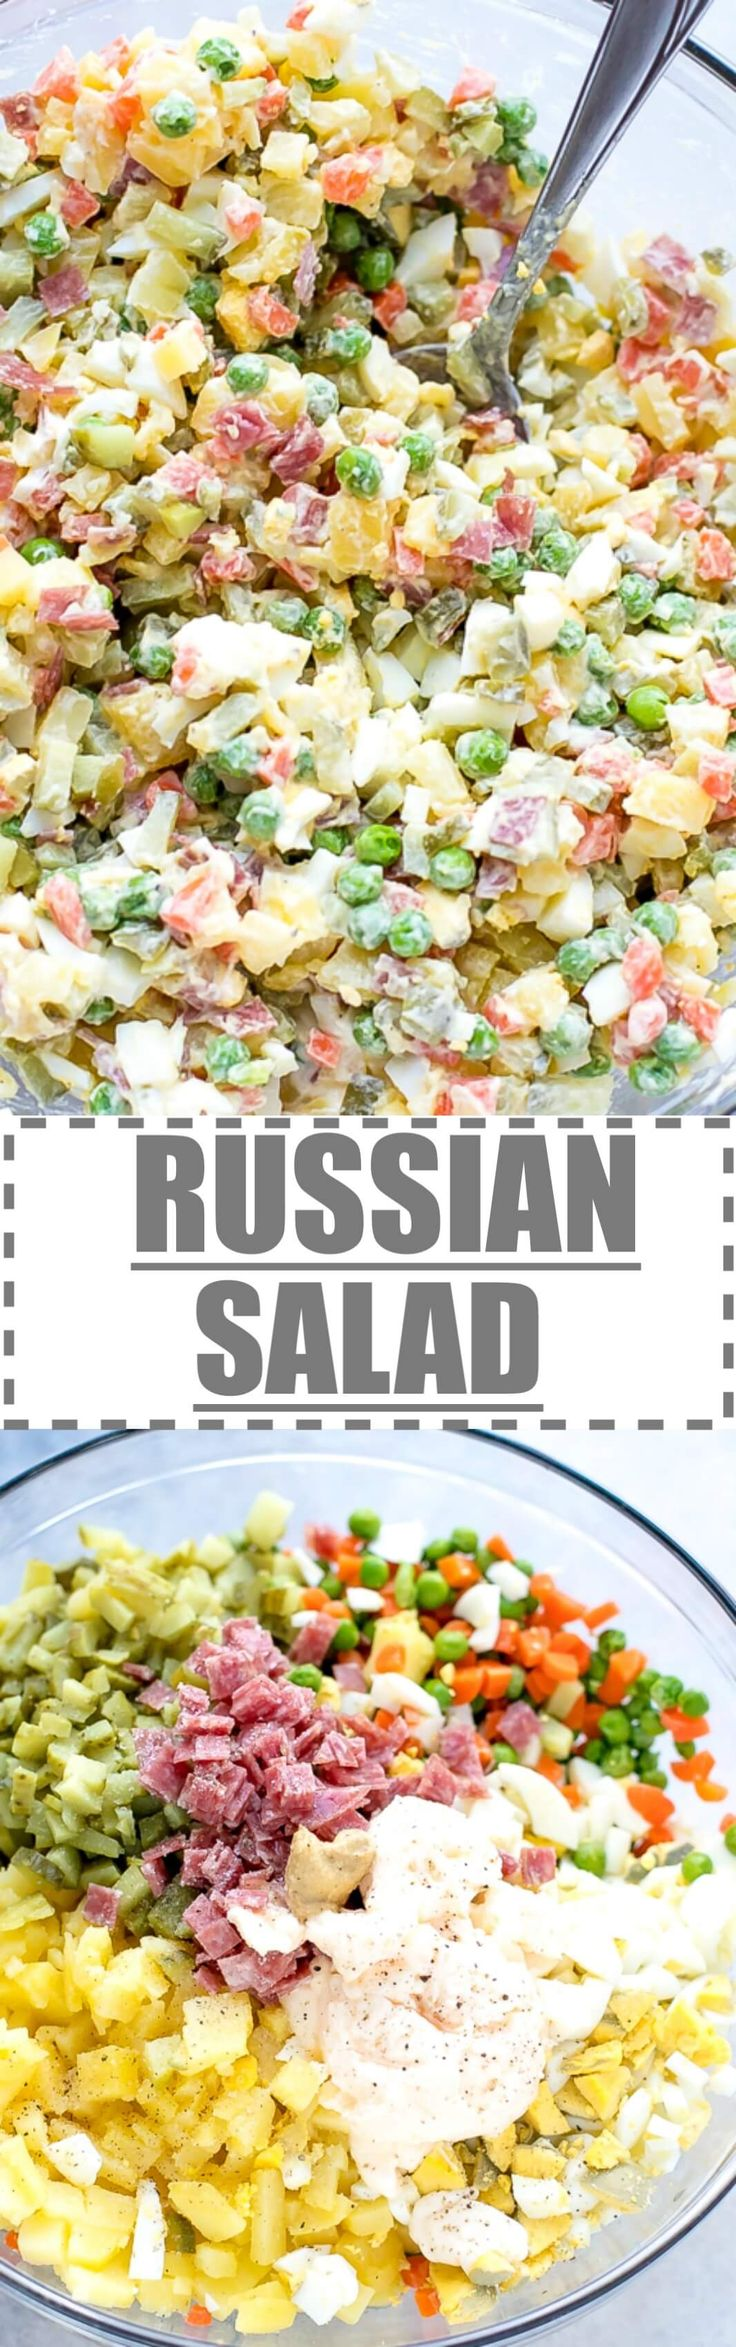 Olivier Russian Salad Recipe - this is the Bulgarian version of a very popular Russian salad, made with diced potatoes, carrots, pickles, eggs, peas, sometimes meat like ham (some people use bologna or salami) and a  creamy dressing made with mayo. via @cookinglsl